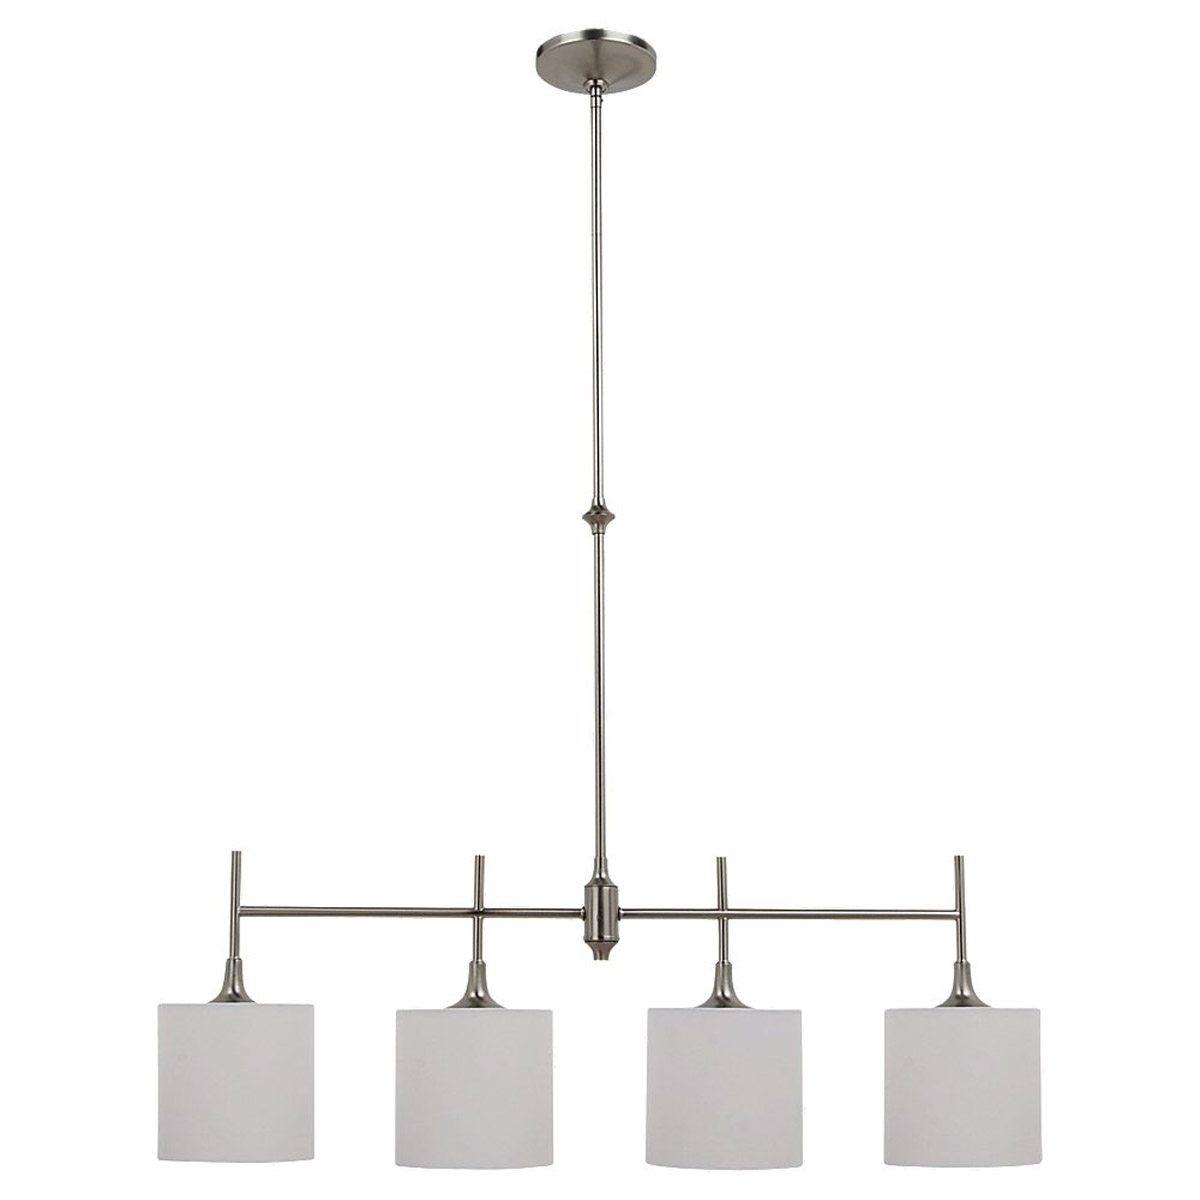 Sea Gull 66952-962 Stirling 4 Light 37 inch Brushed Nickel Island Pendant Ceiling Light in White Linen Fabric photo